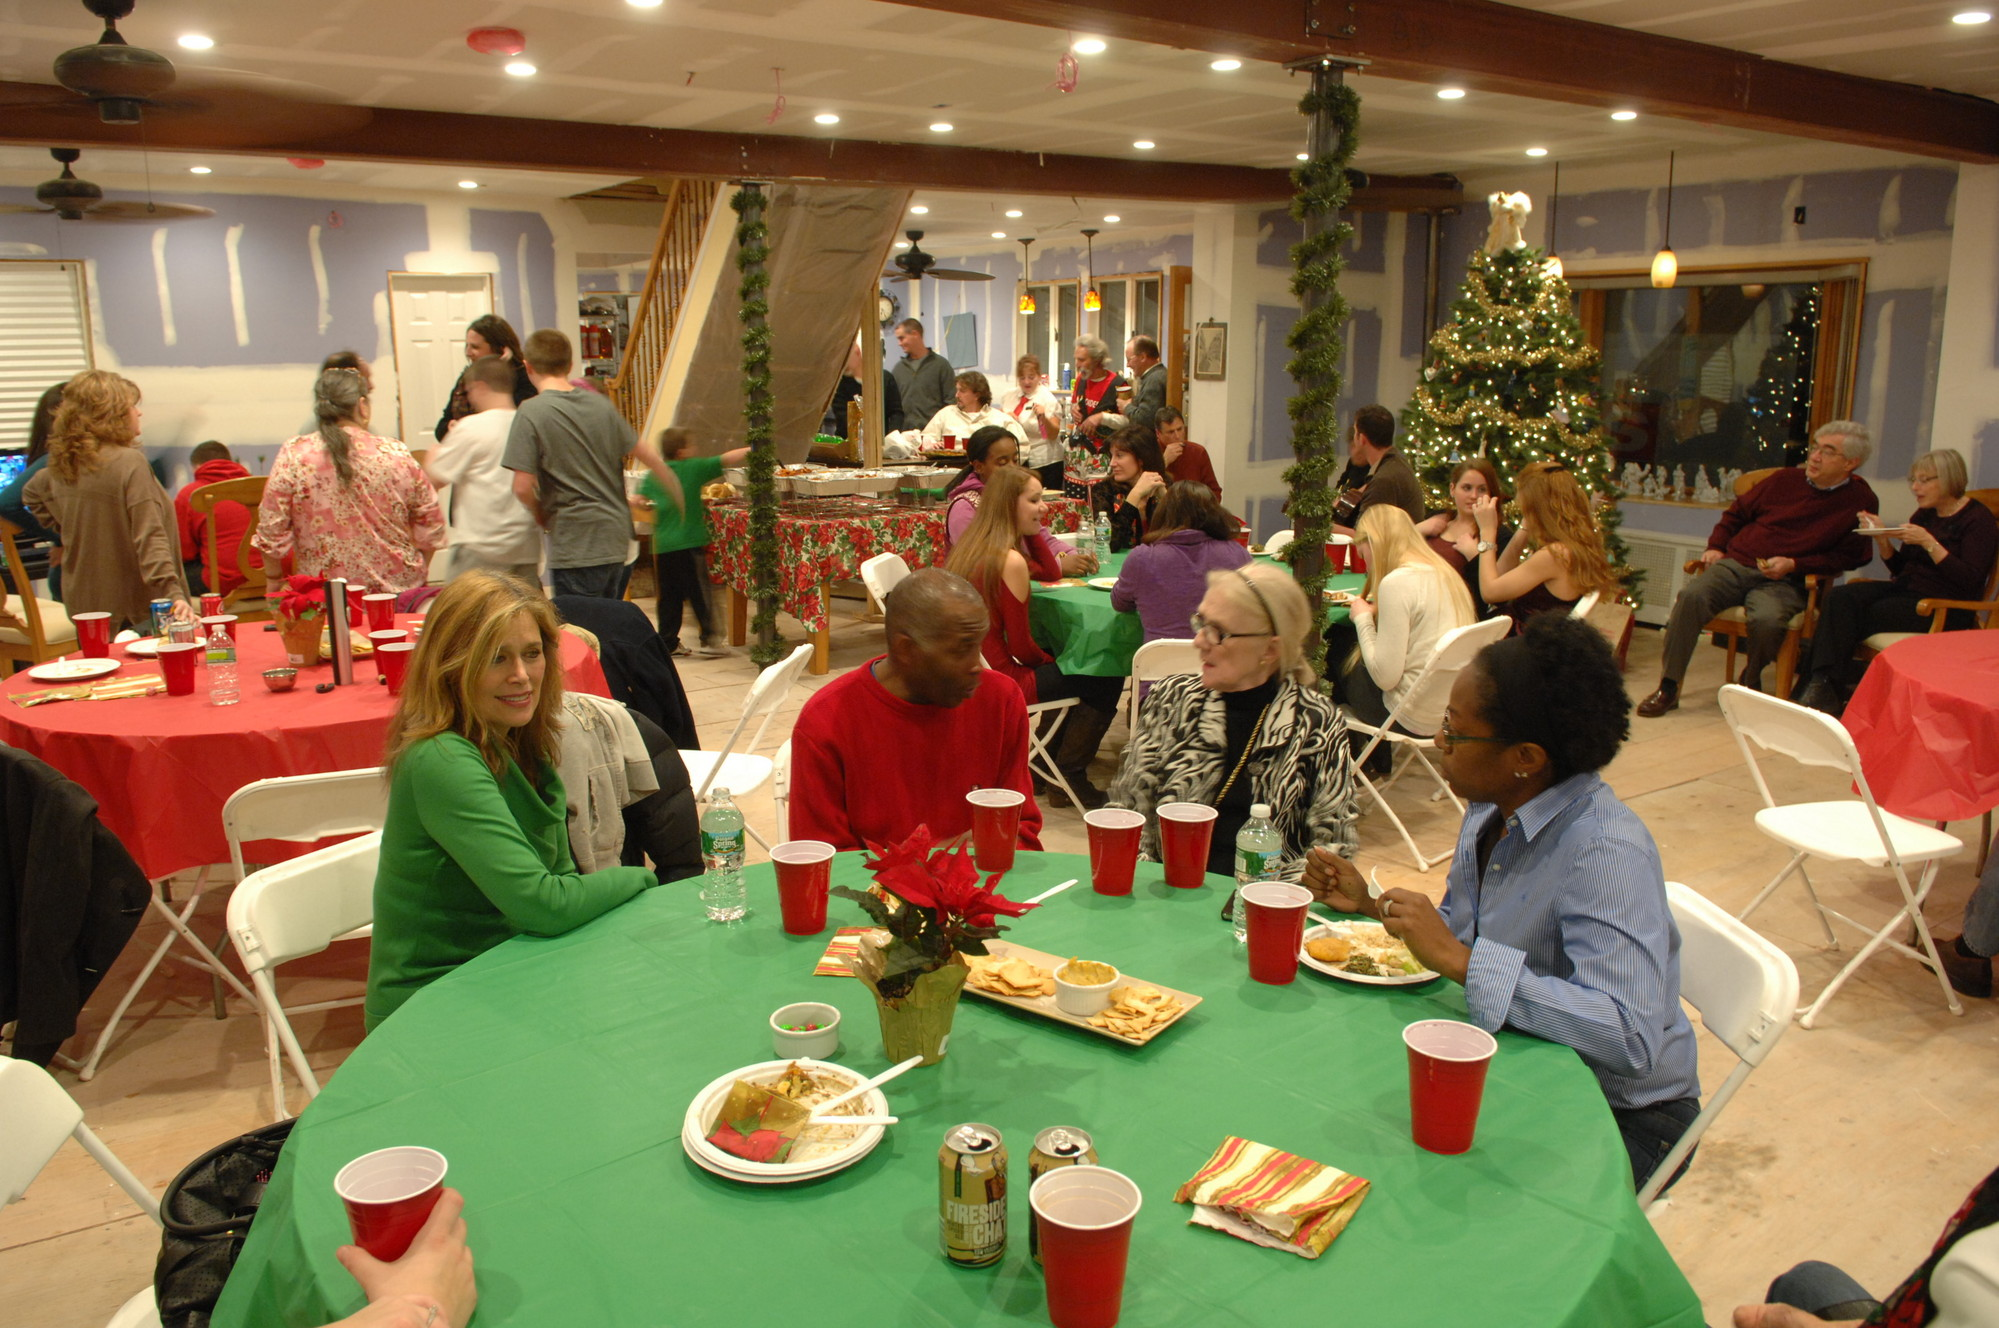 A holiday party for Harbor Court Road was held at the Kennedy house this year because most homes in the neighborhood were still too badly damaged.